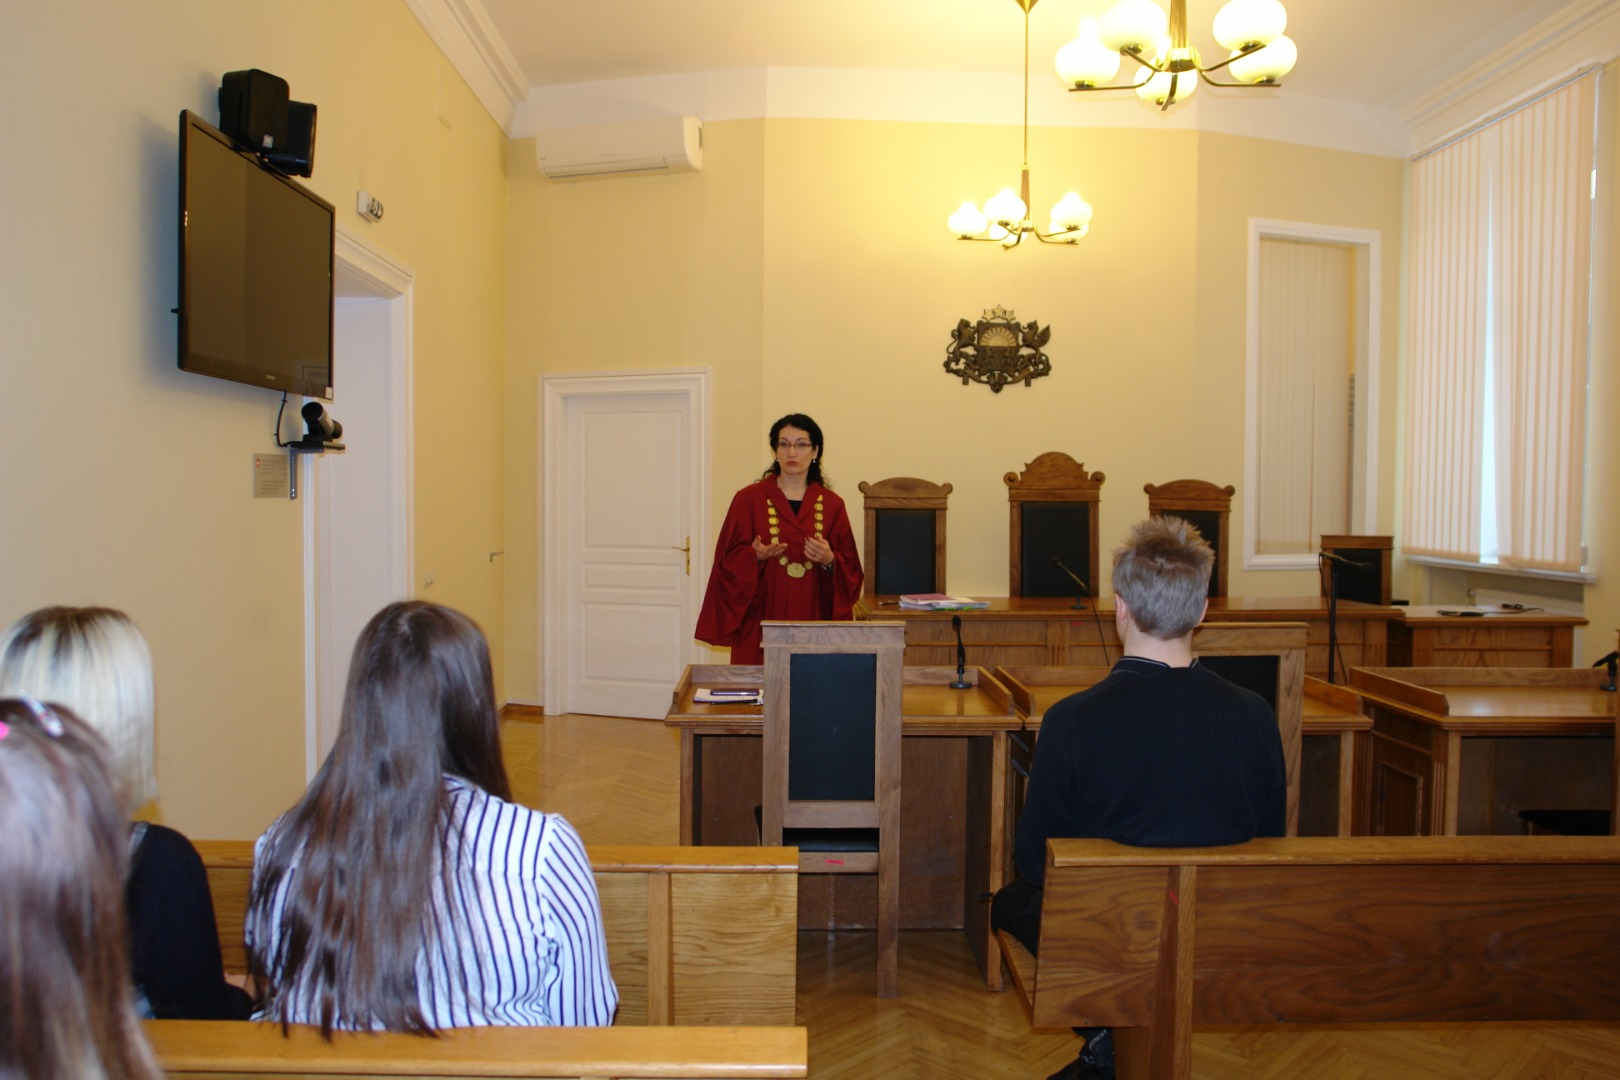 """13.02.2019. In the Shadow Day 17 students from Cesis, Vecpiebalga, Liepaja, Dagda, Rezekne, Jelgava, Ogre, Babite, Valmiera, Daugmale and Riga visited the Supreme Court. Students learnt about the Latvian judicial system and the jurisdiction of the Supreme Court and met with their """"shadow givers"""" – the Chief justice of the Supreme Court, judges, assistants to judges and legal research counsels, as well as took part in court hearings. In the photo: judge Dace Mita speaks with """"shadows"""" after the court hearing."""